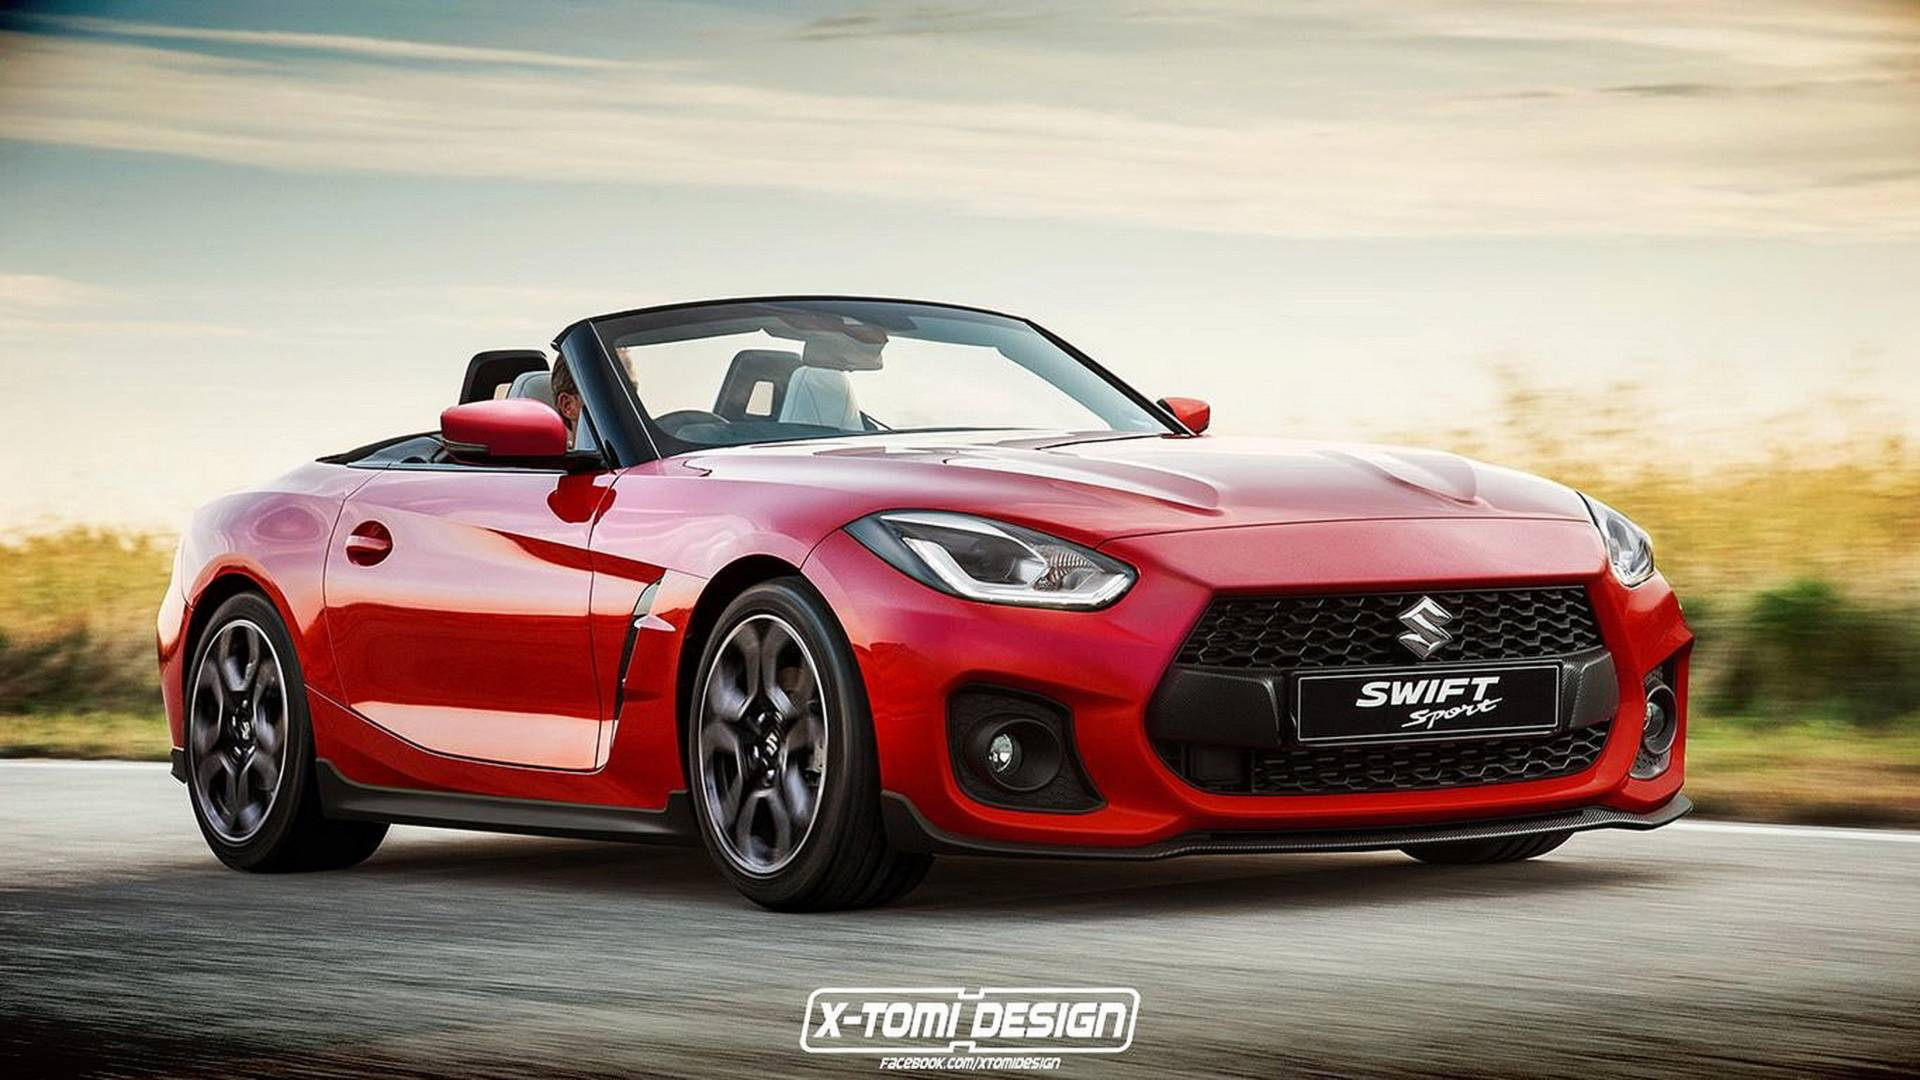 72 The Best 2019 New Suzuki Swift Sport Price Design and Review